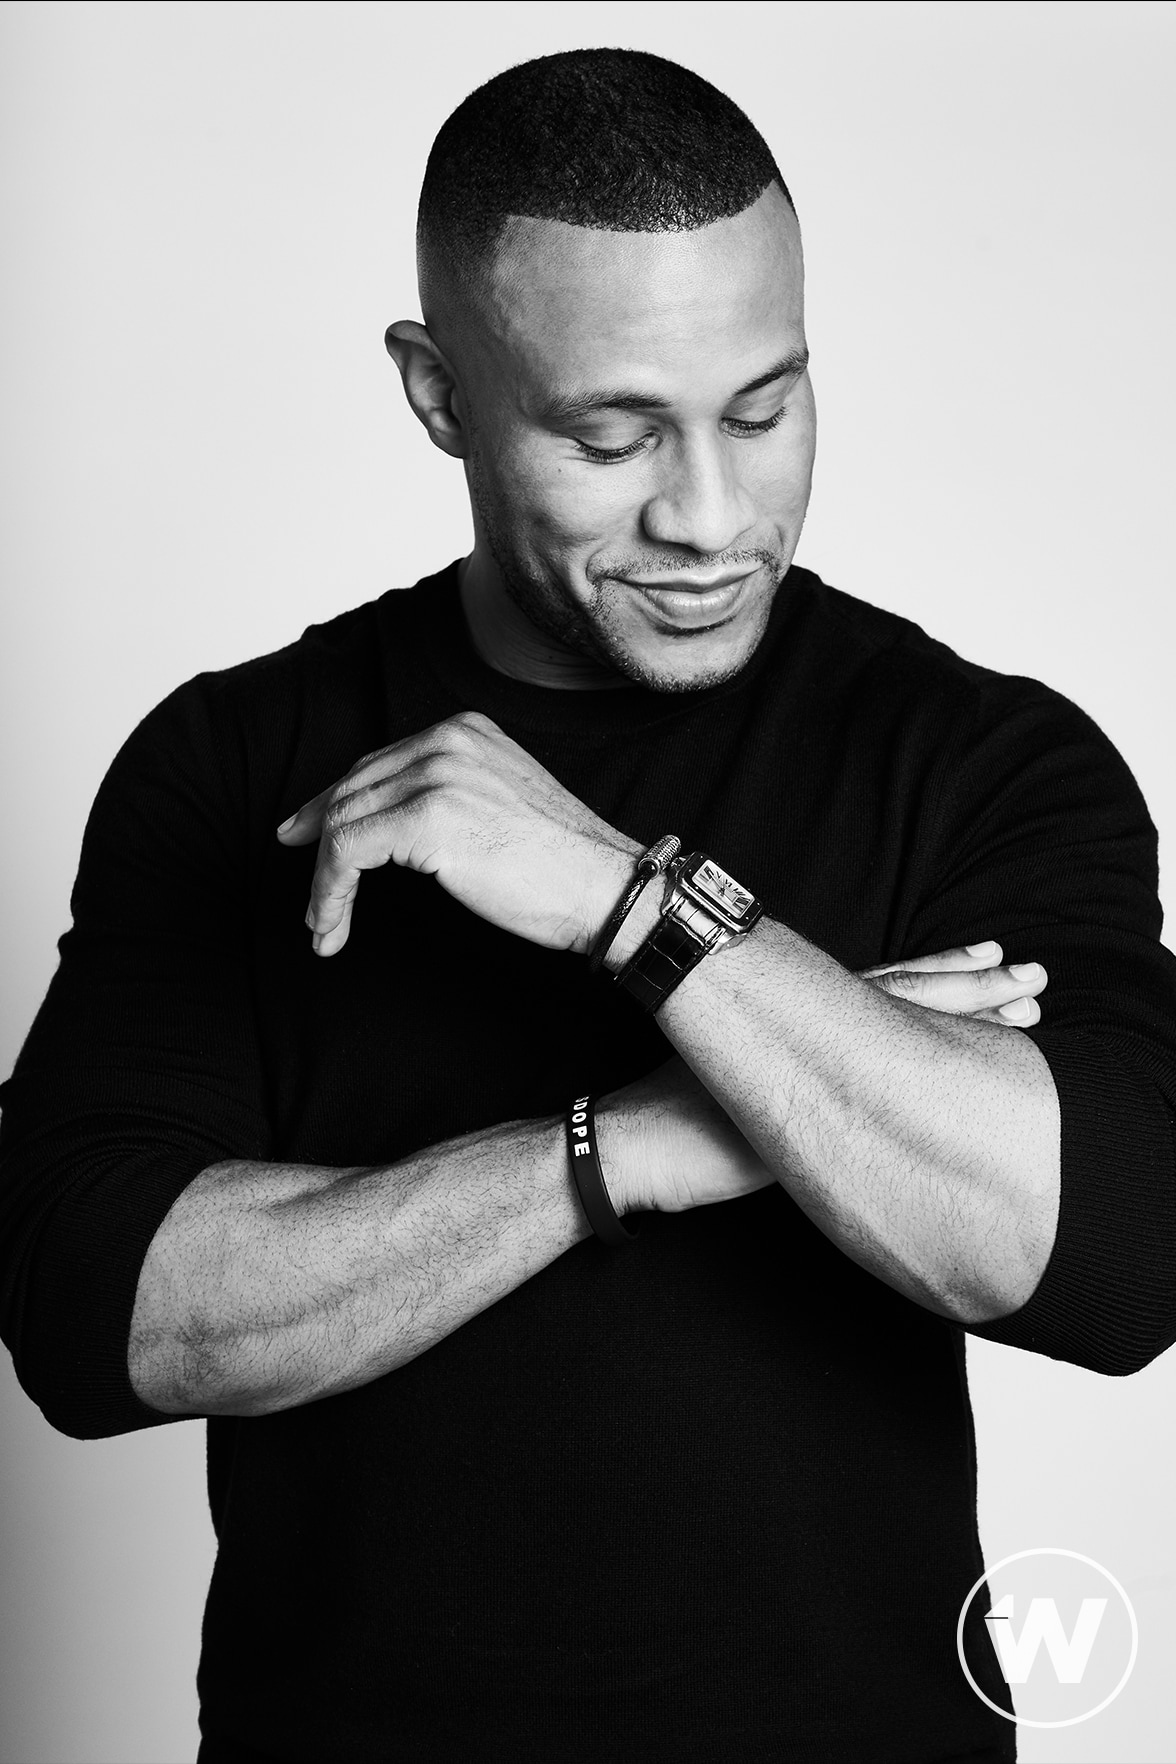 DeVon Franklin, The Truth about Men